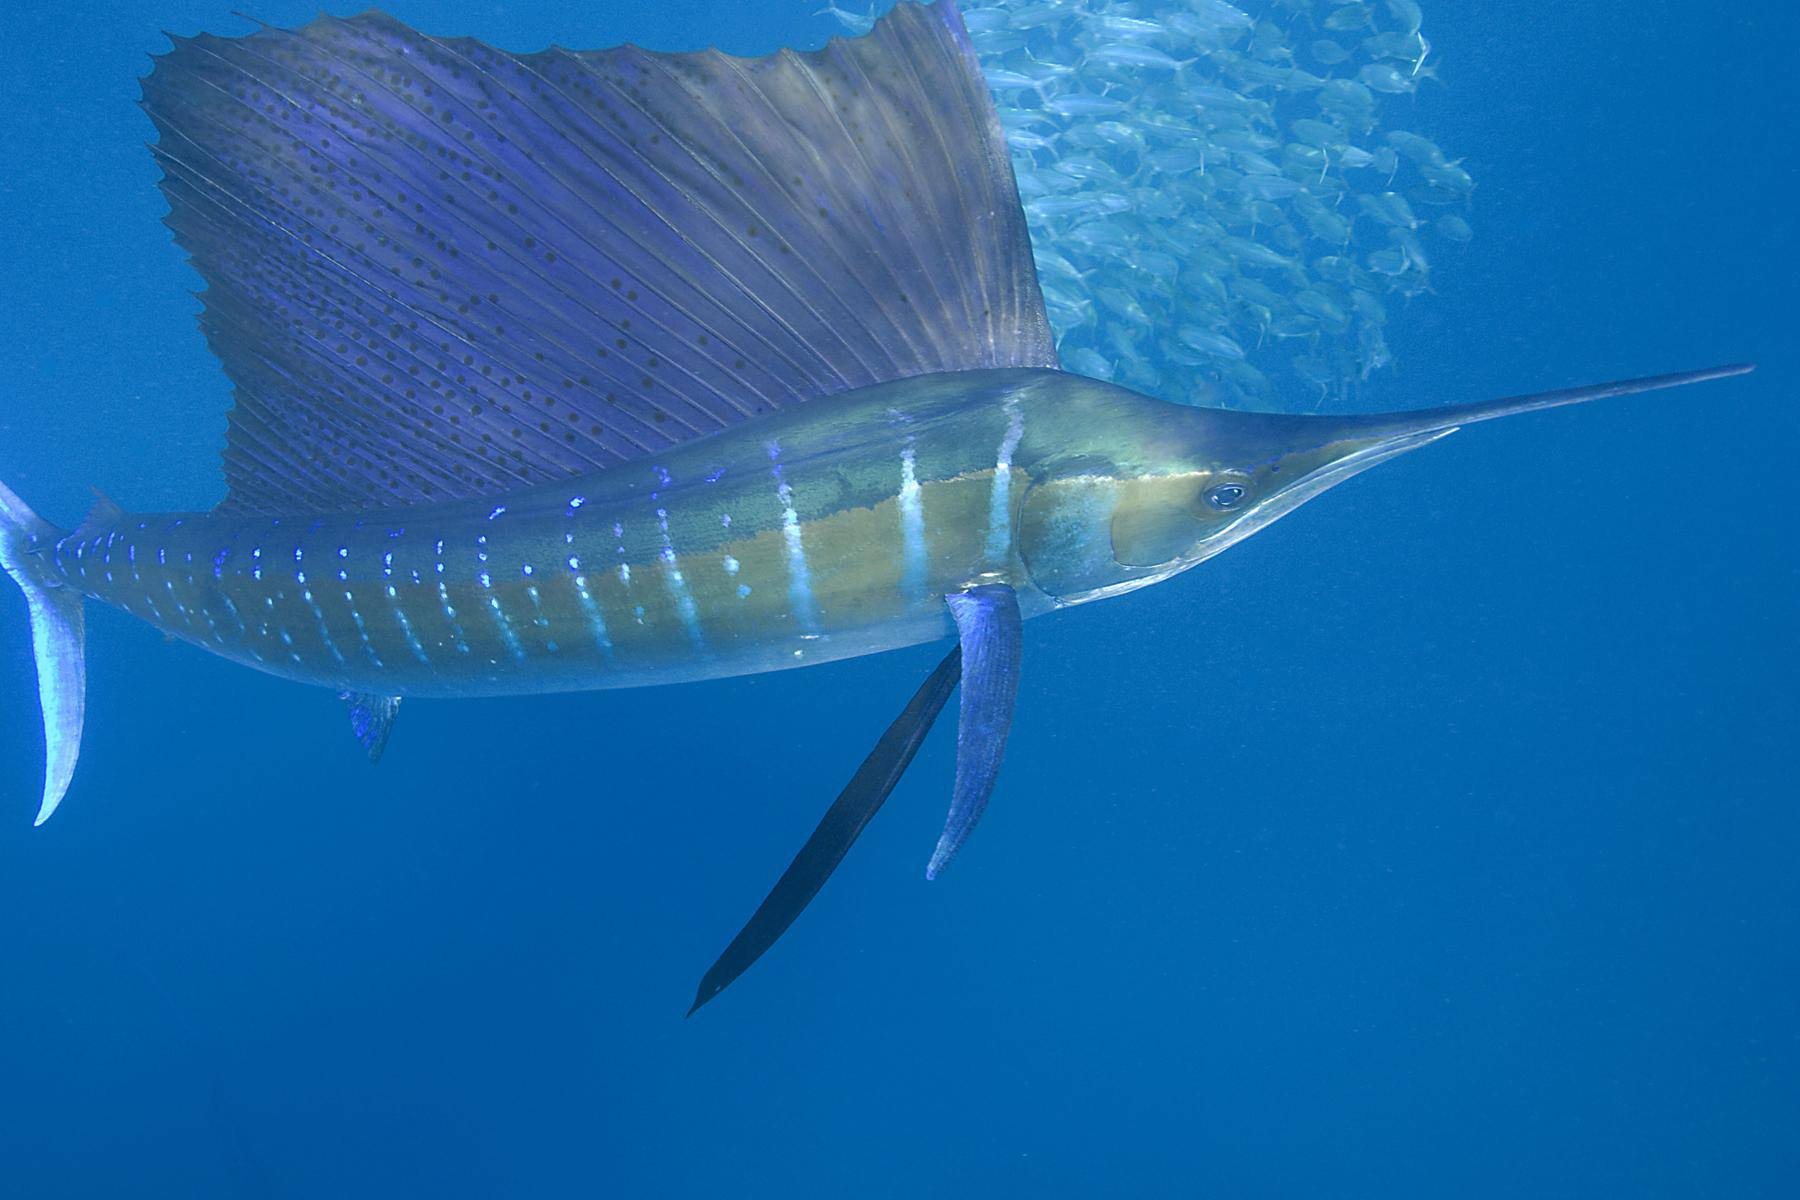 An Atlantic sailfish mugs for the camera in Mexico